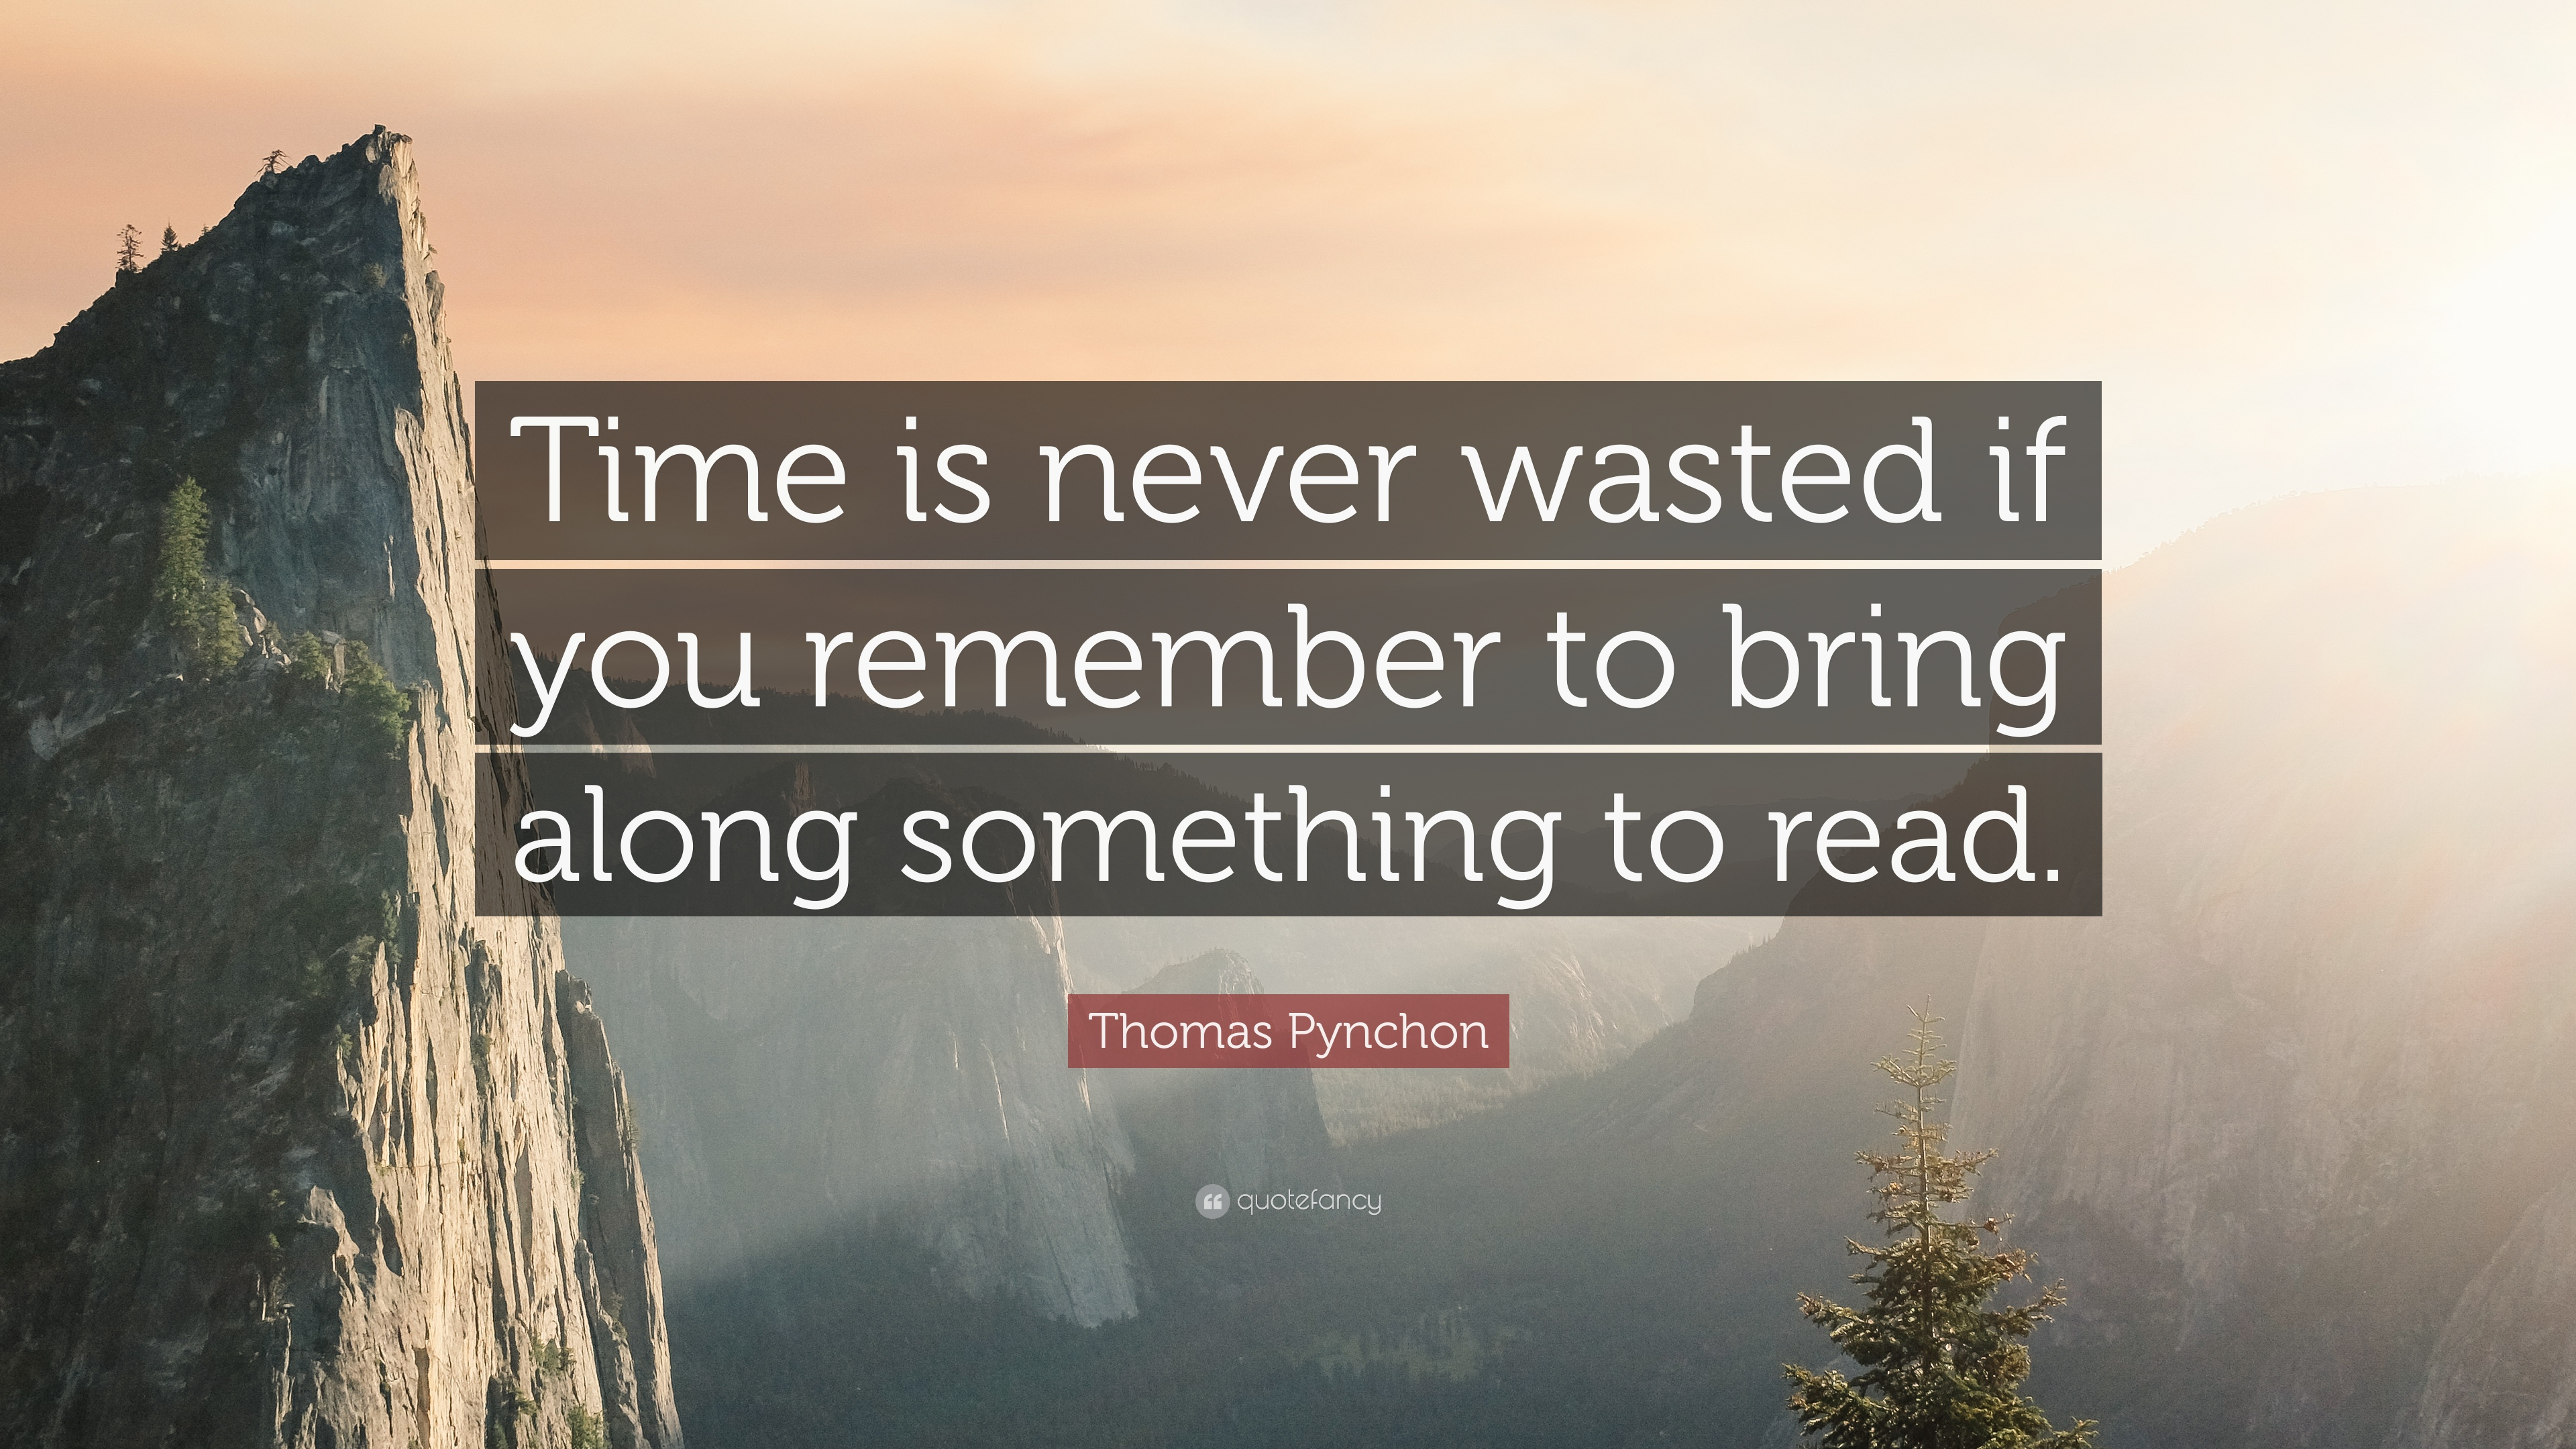 Thomas Pynchon Quote Time Is Never Wasted If You Remember To Bring